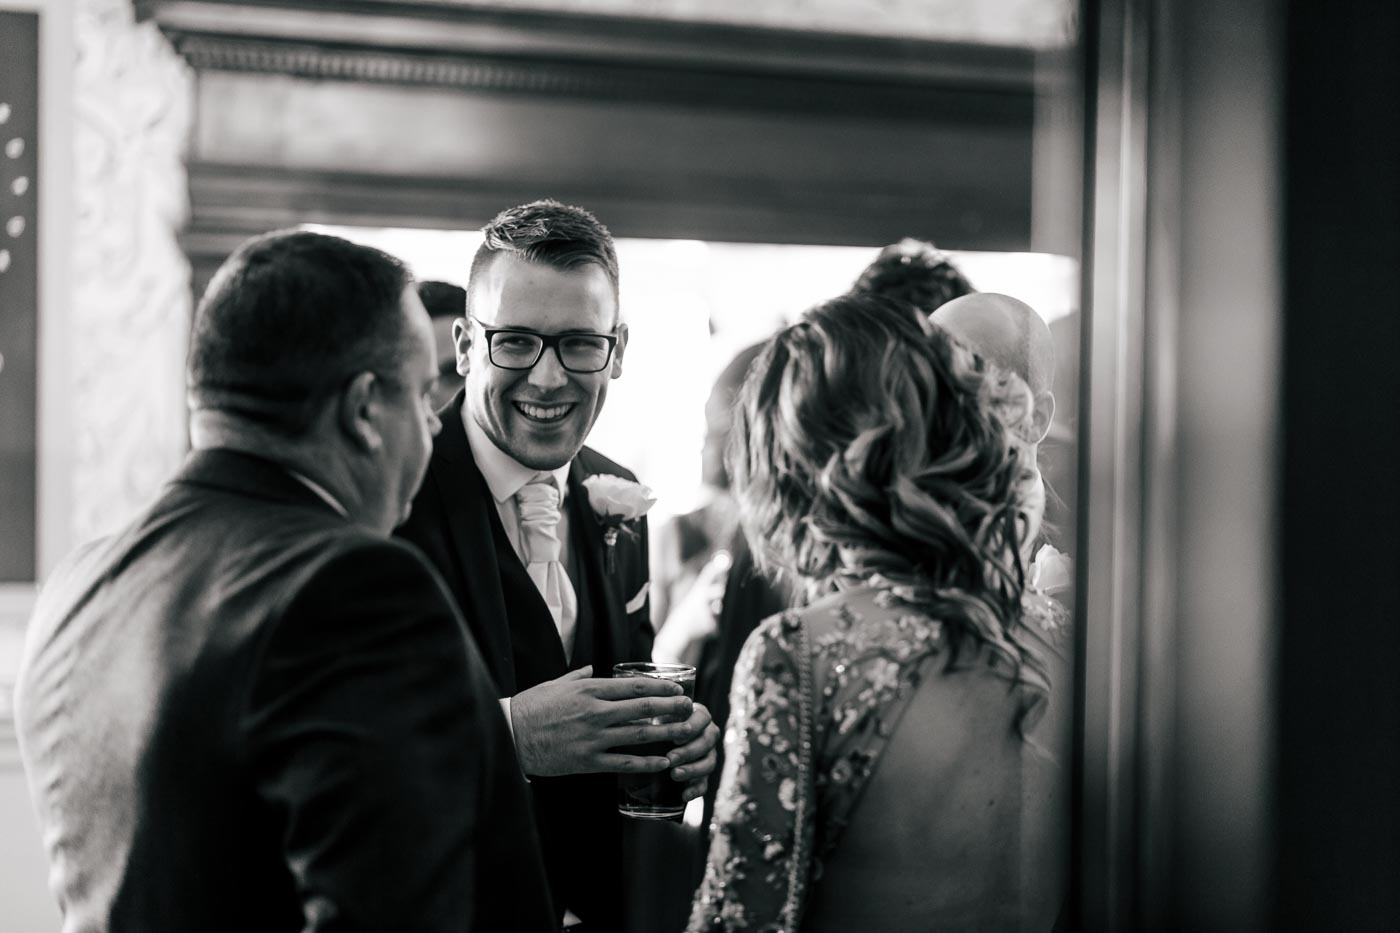 candid photograph of the groom speaking with guests